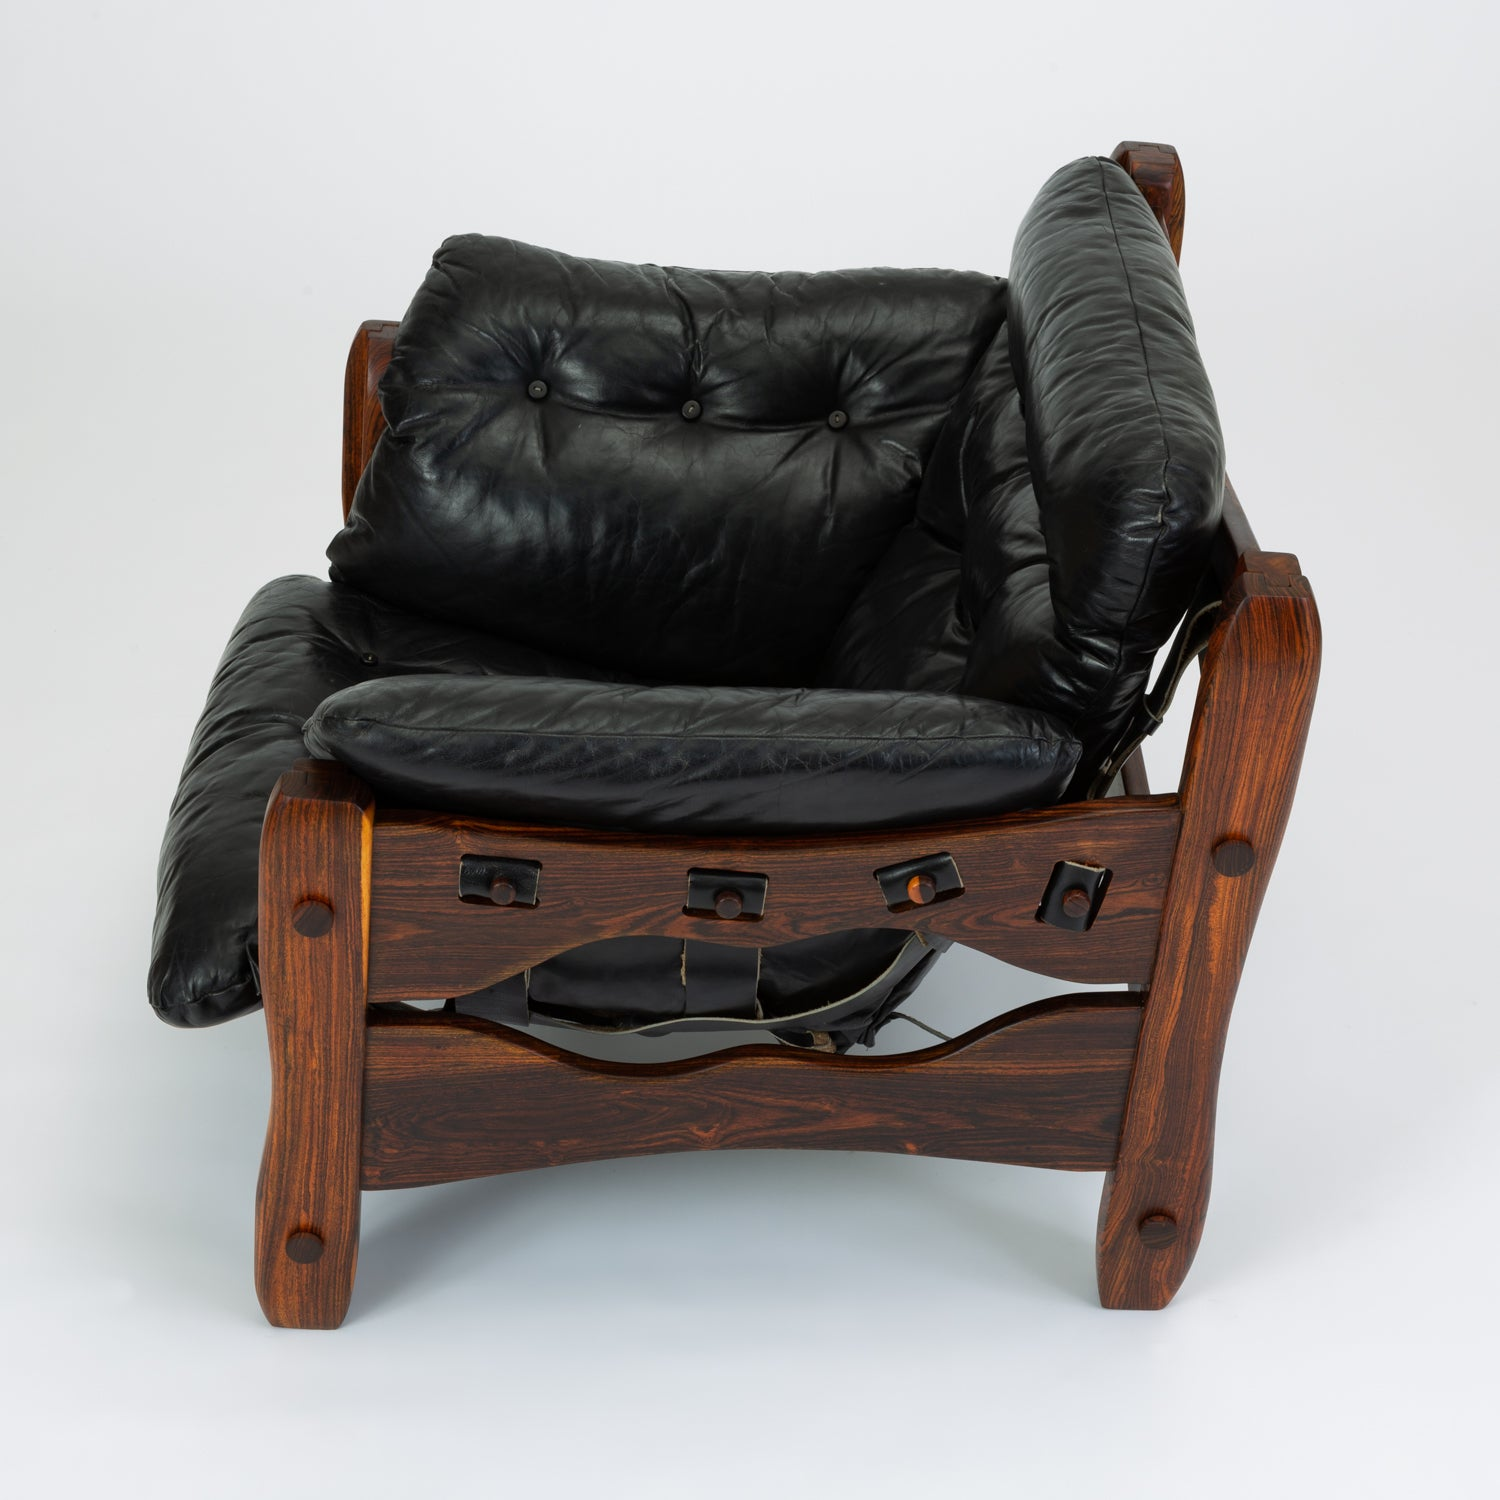 Antiques Don Shoemaker Descanso Lounge Chair Mid Century Latin Modernism Mexico Leather